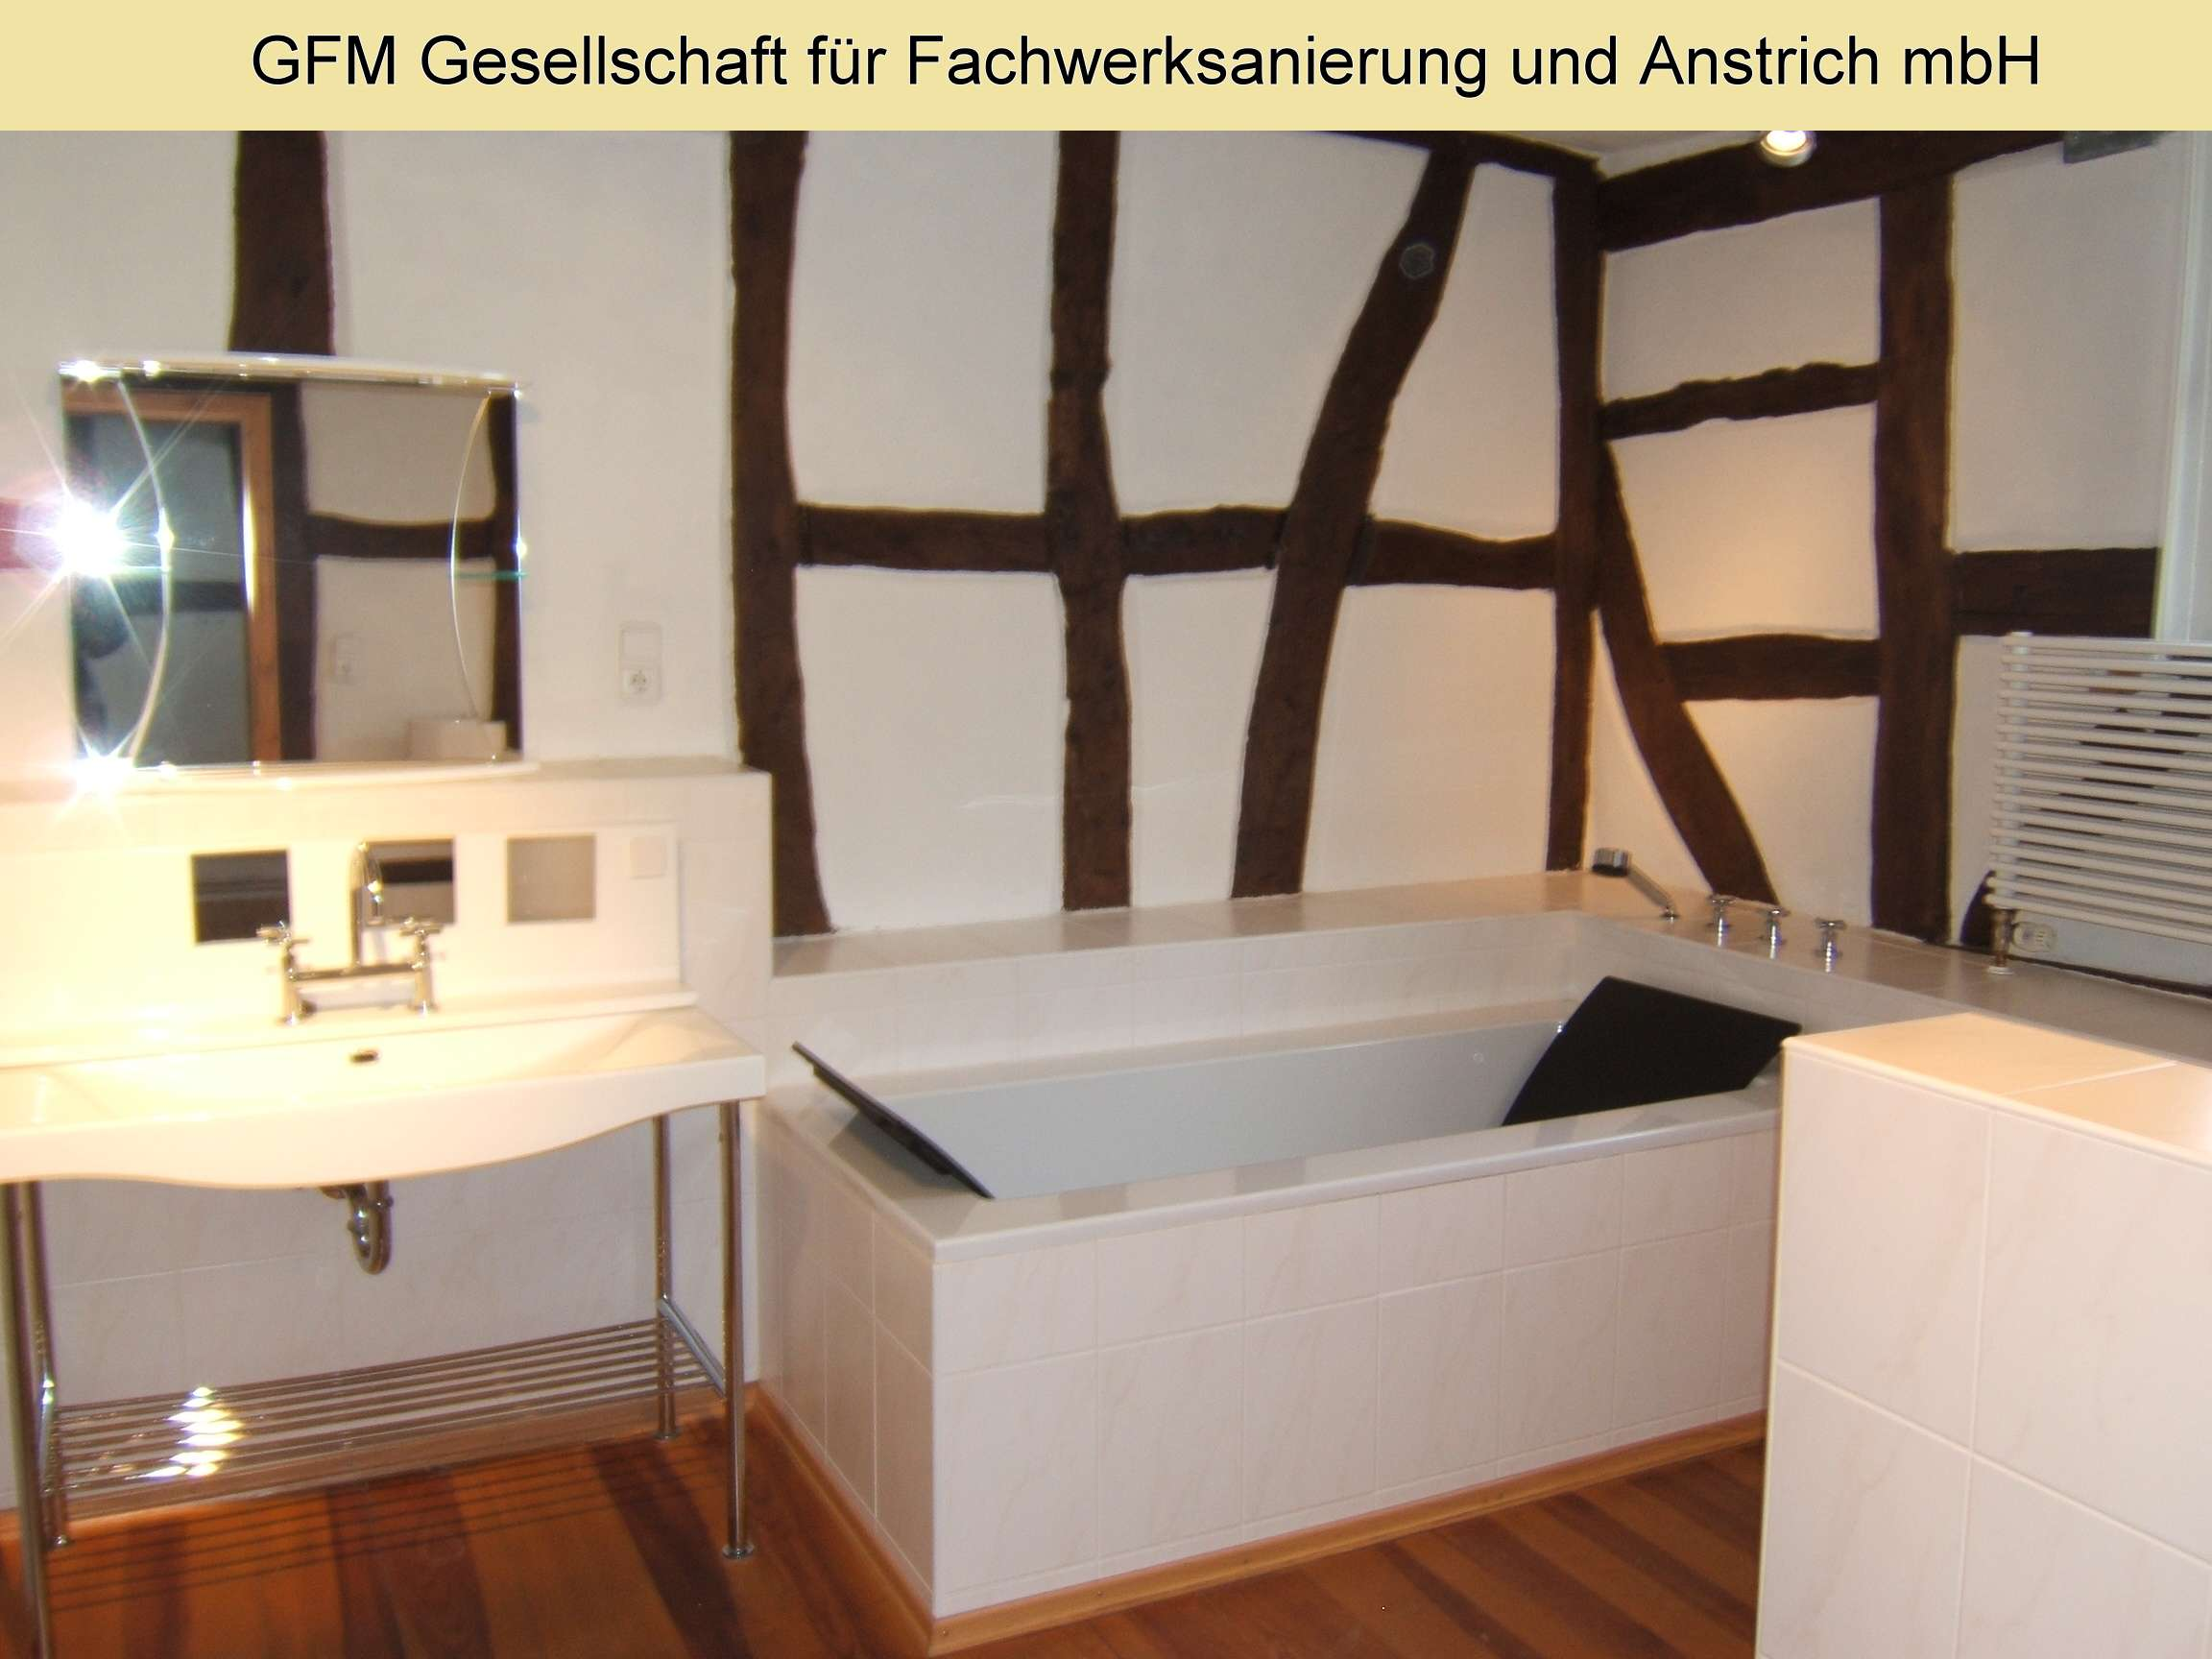 gfm badsanierung badsanierung. Black Bedroom Furniture Sets. Home Design Ideas